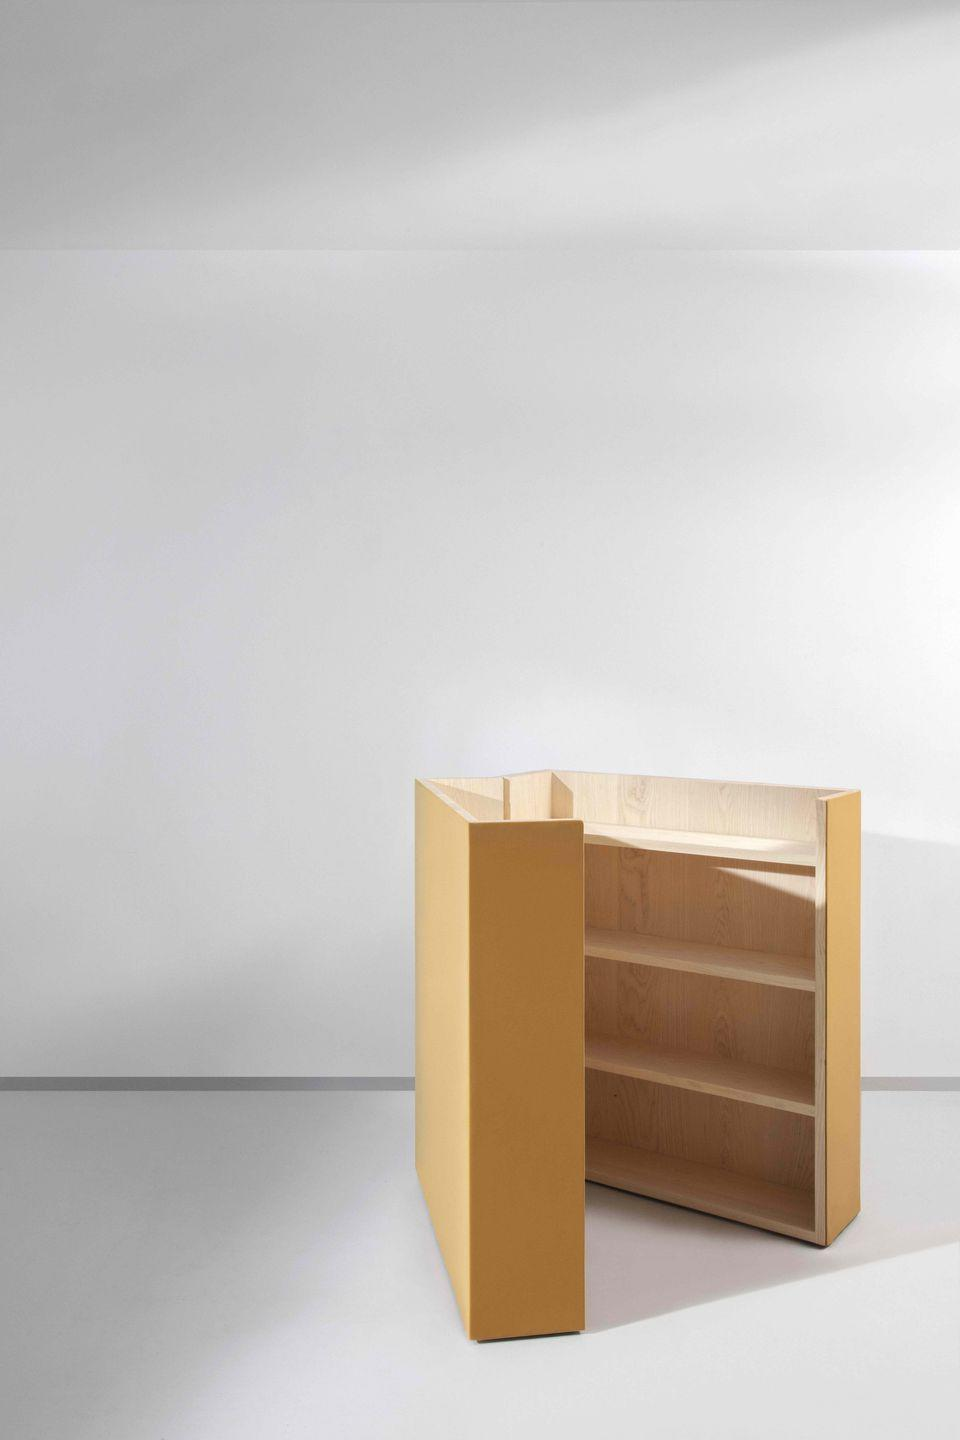 """<p>Danish practice Studio David Thulstrup has teamed up with Sørensen Leather to create a capsule collection of limited-edition designs that blur the boundaries between living and working. The 'Landscape' divider can be closed to hide its work-related contents at the end of the day. Approx £12,443, <a href=""""https://studiodavidthulstrup.com/DT-013-03-landscape-divider"""" rel=""""nofollow noopener"""" target=""""_blank"""" data-ylk=""""slk:studiodavidthulstrup.com"""" class=""""link rapid-noclick-resp"""">studiodavidthulstrup.com</a></p>"""